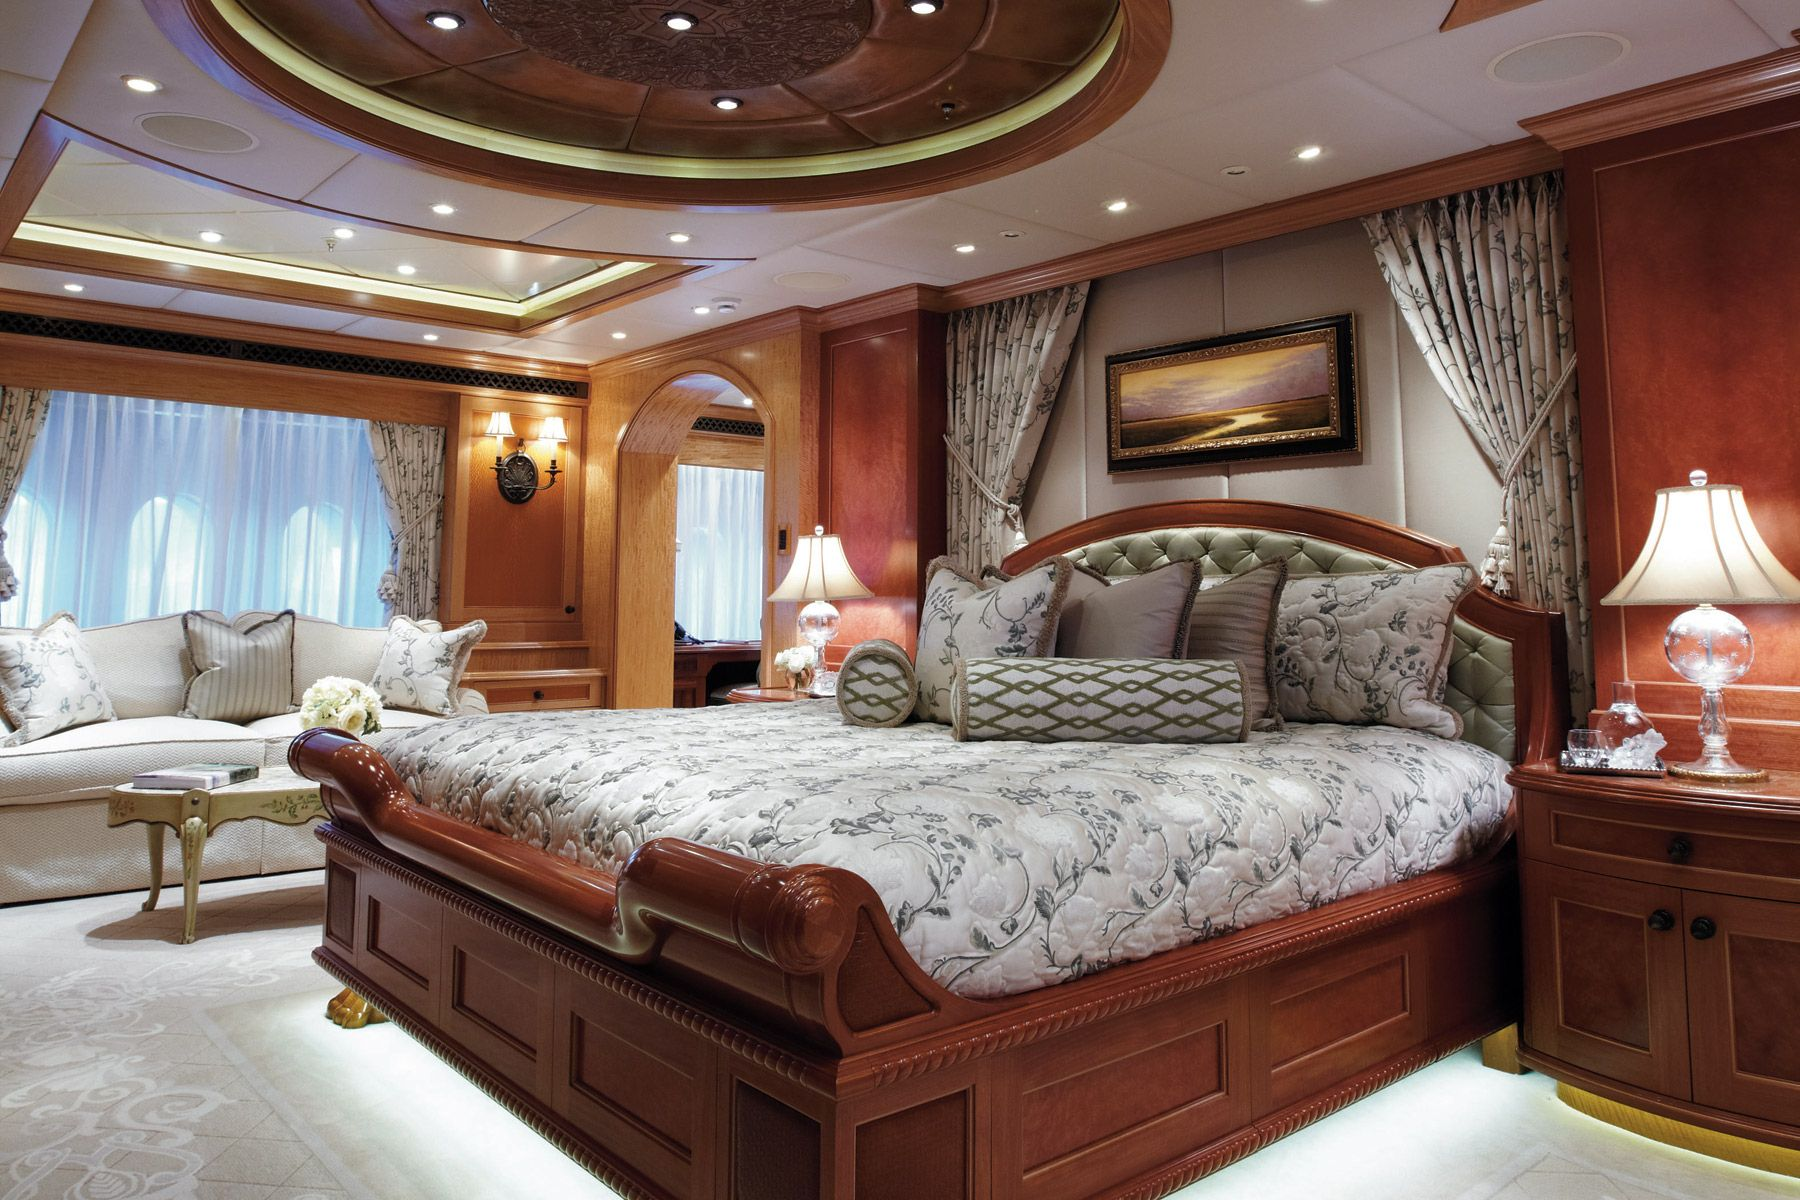 yacht bedrooms experience yachts services team contact blog yachts pinterest bateaux. Black Bedroom Furniture Sets. Home Design Ideas